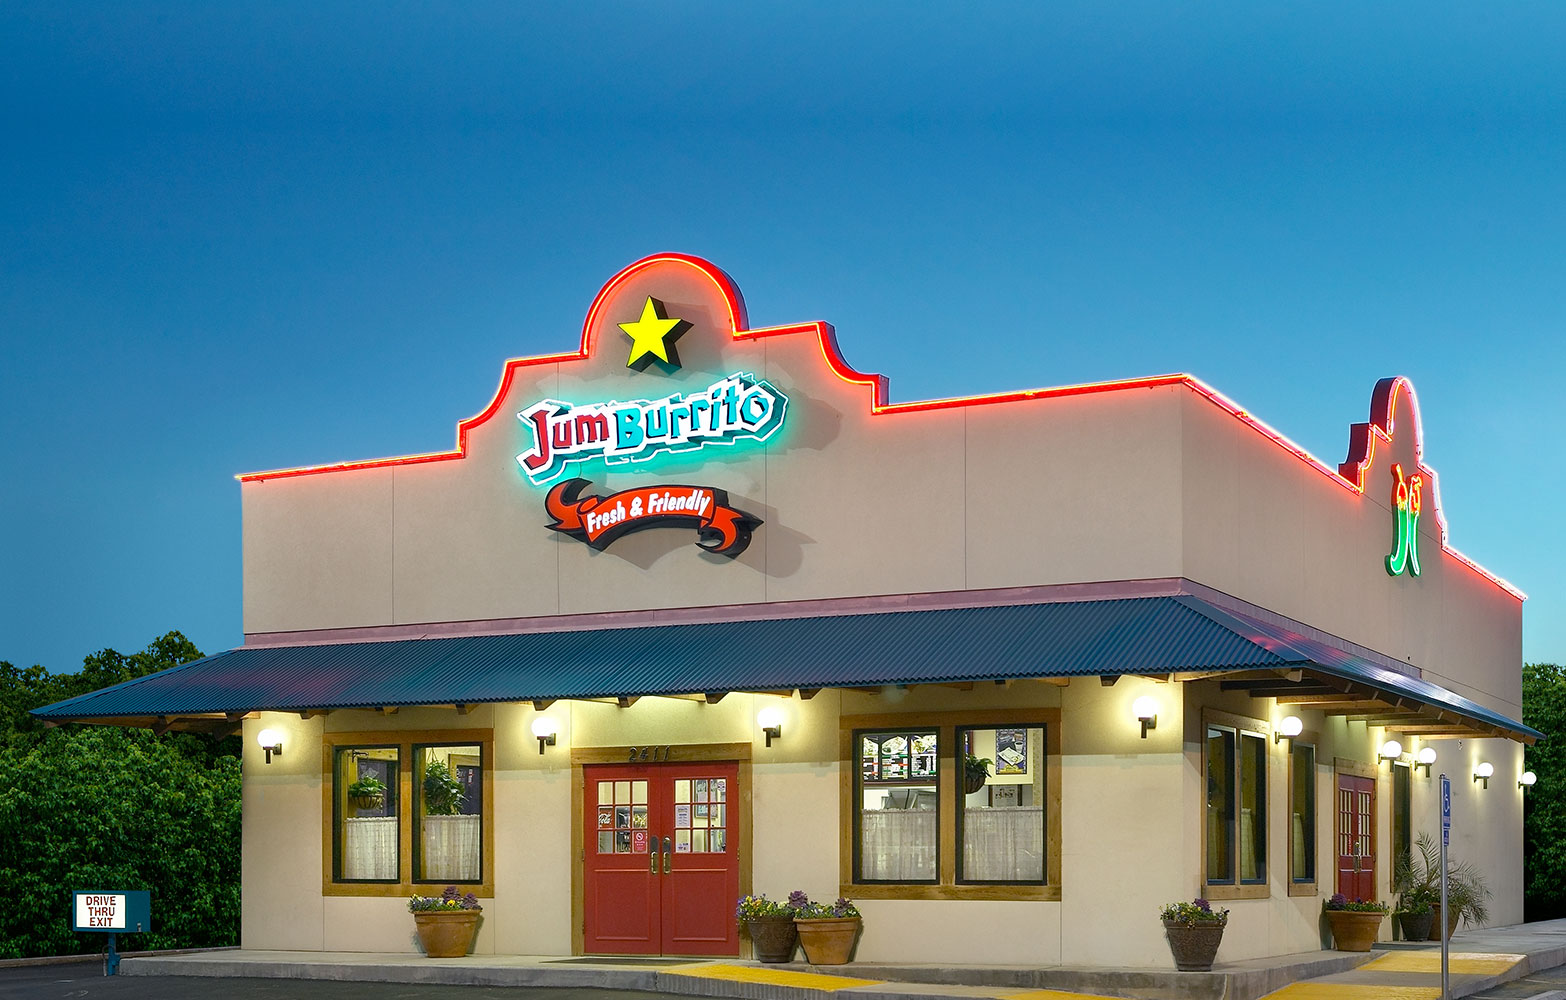 Authentic Lone Star Burritos Local Fast Casual Mexican Food Specializing In Award